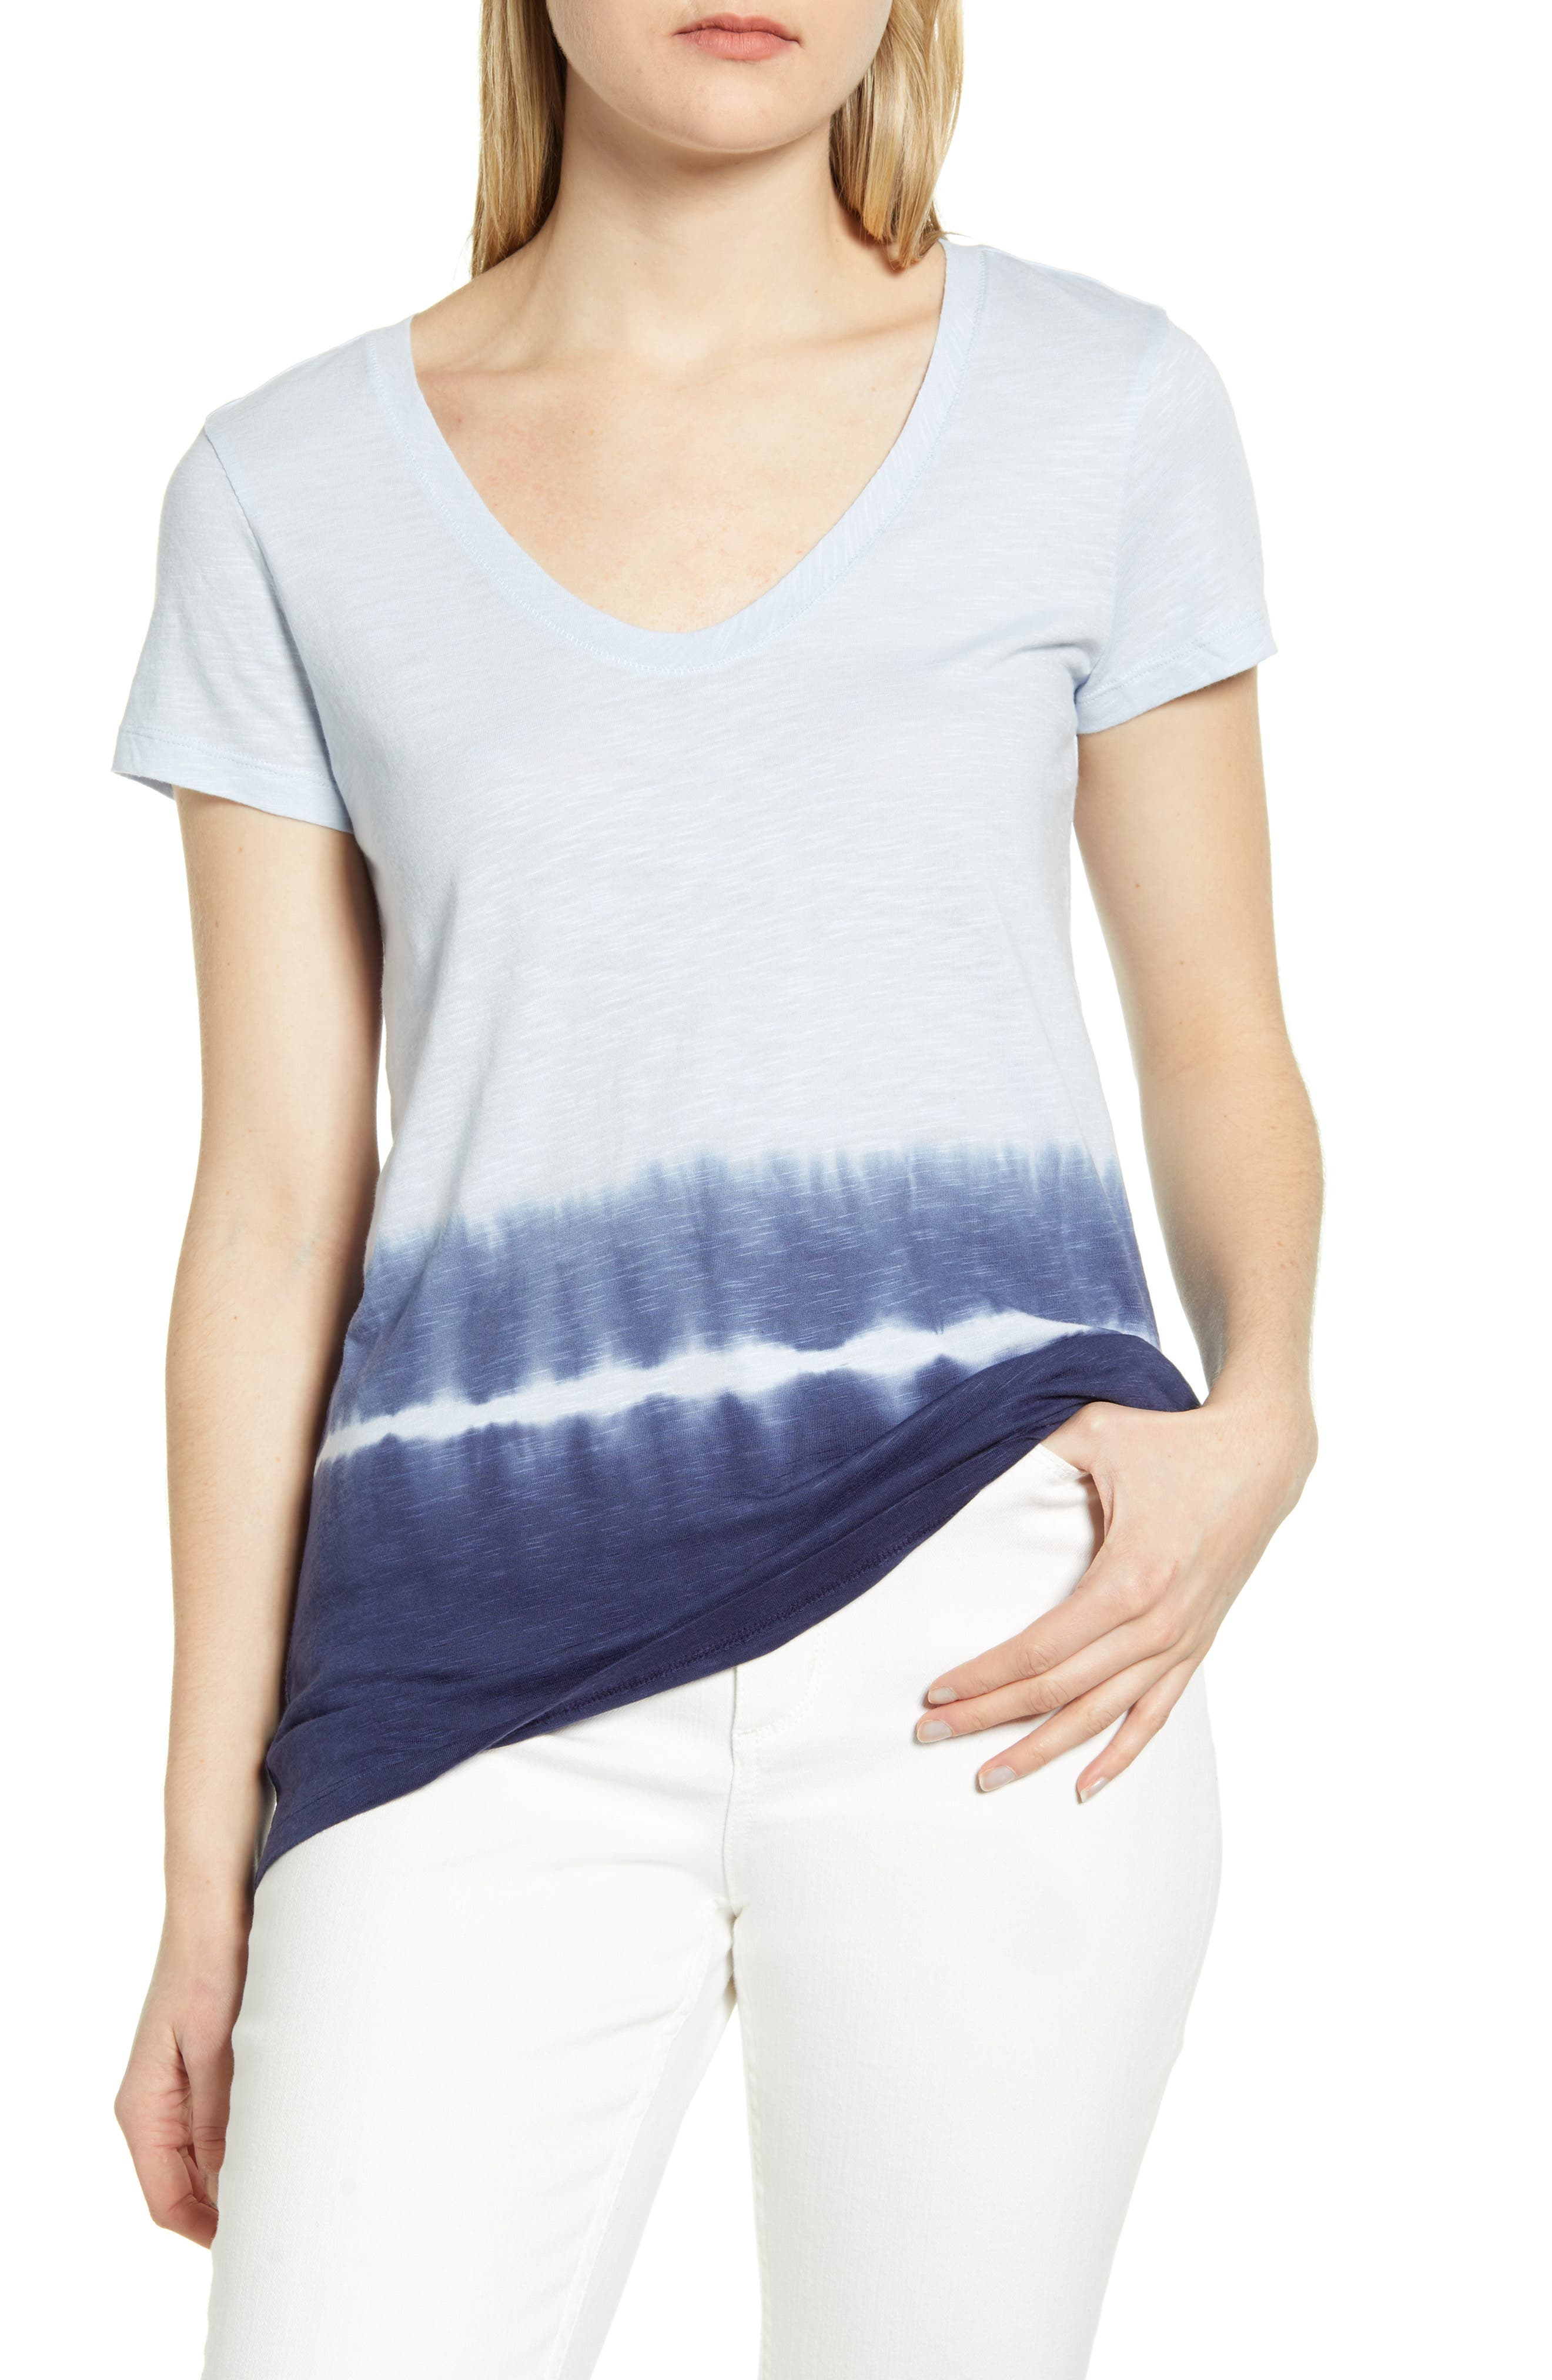 On-trend dip-dyed coloring amps the appeal of this slubbed T-shirt cut with a V-neck, short sleeves and a comfortably long length. Style Name: Caslon Dip Dye T-Shirt. Style Number: 5988189 1. Available in stores.